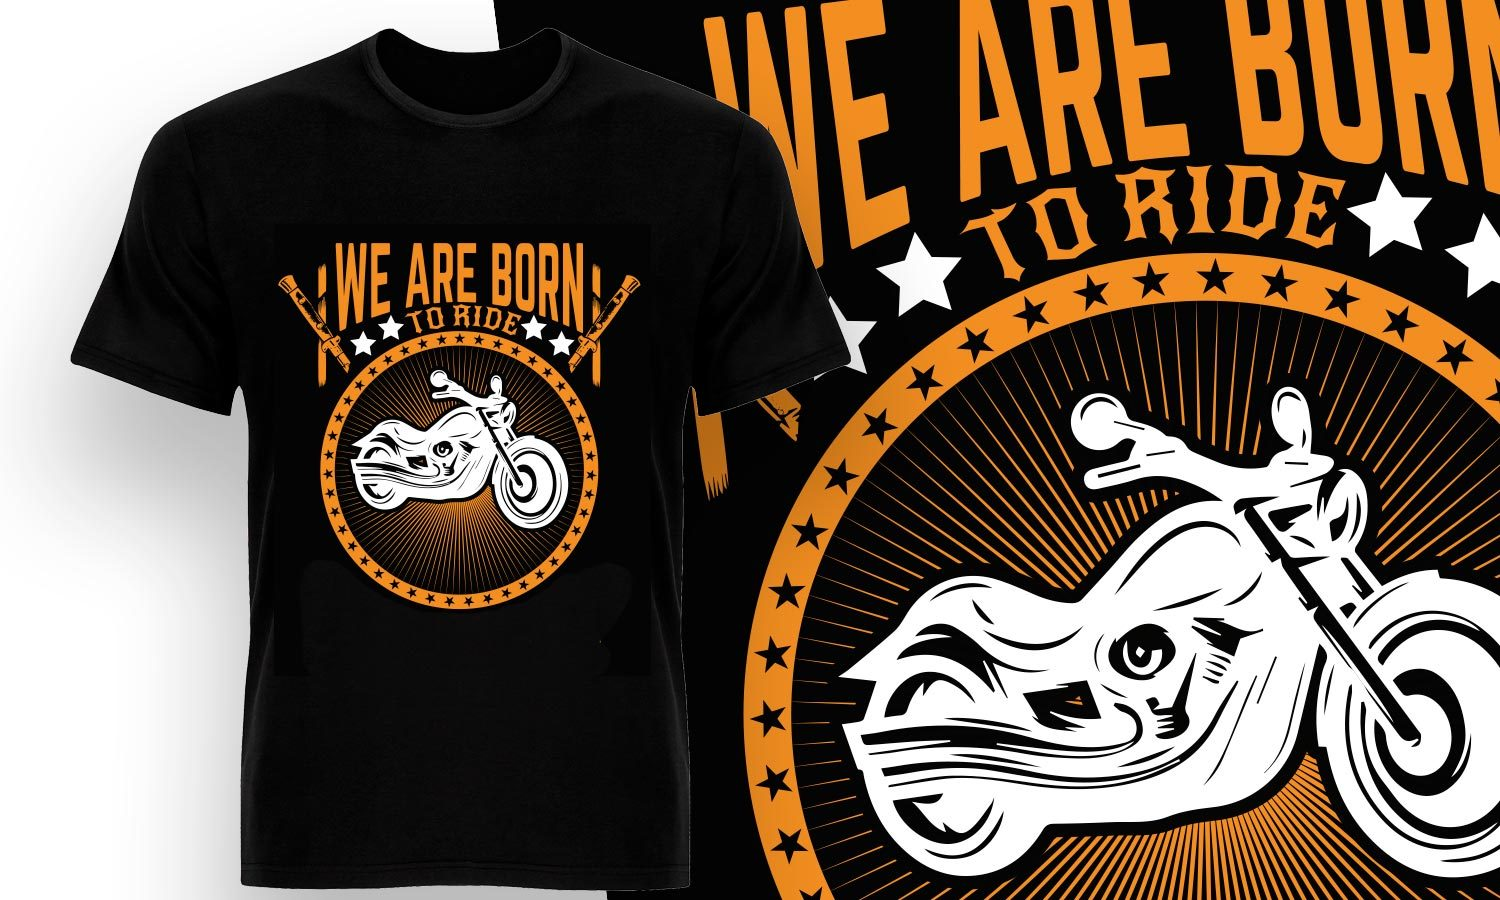 Born To Ride - Printed T-Shirt for Men, Women and Kids - TS170